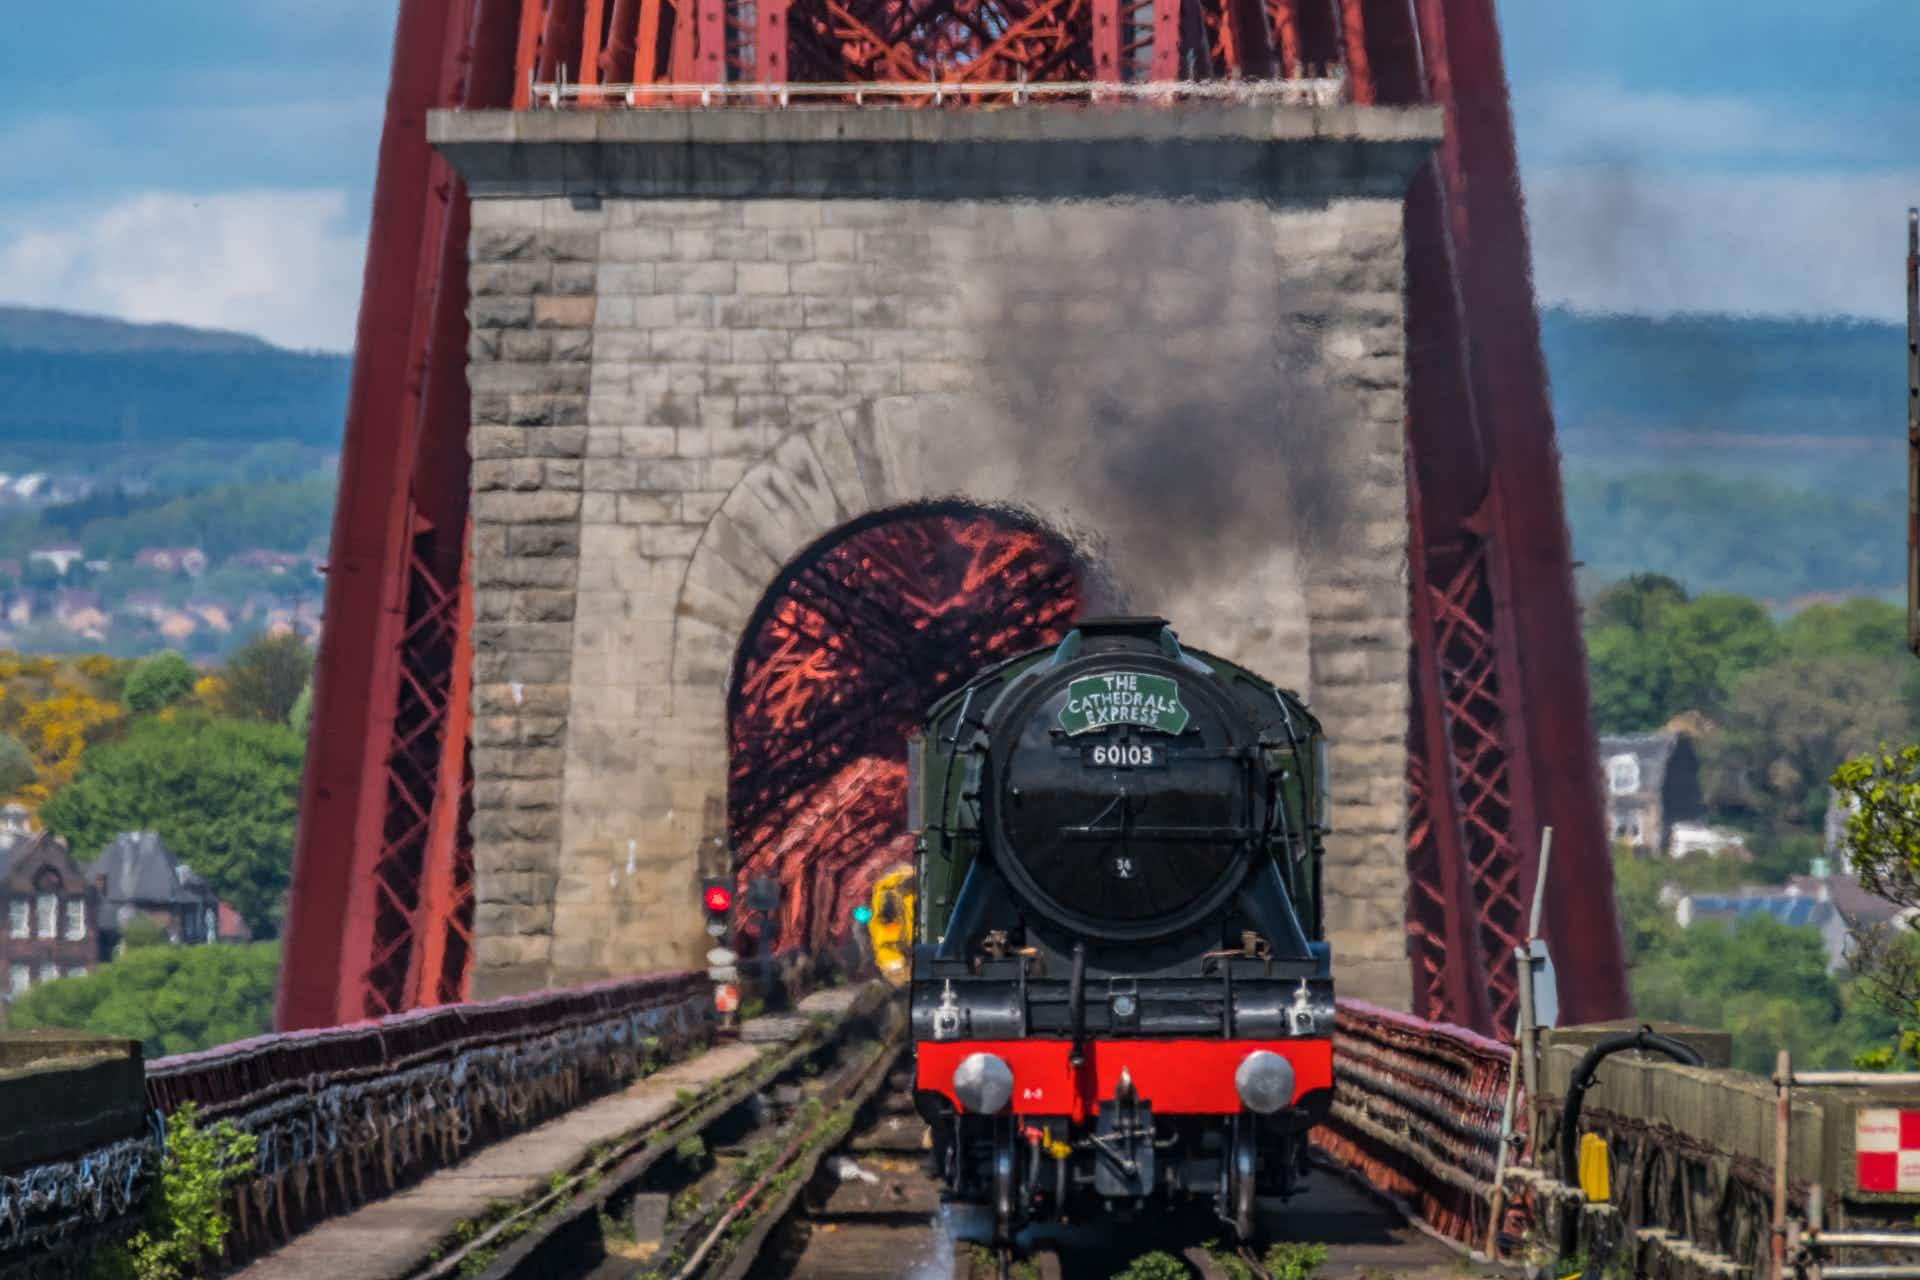 You'll be able to take a steam train over the Forth Rail Bridge in Scotland this summer